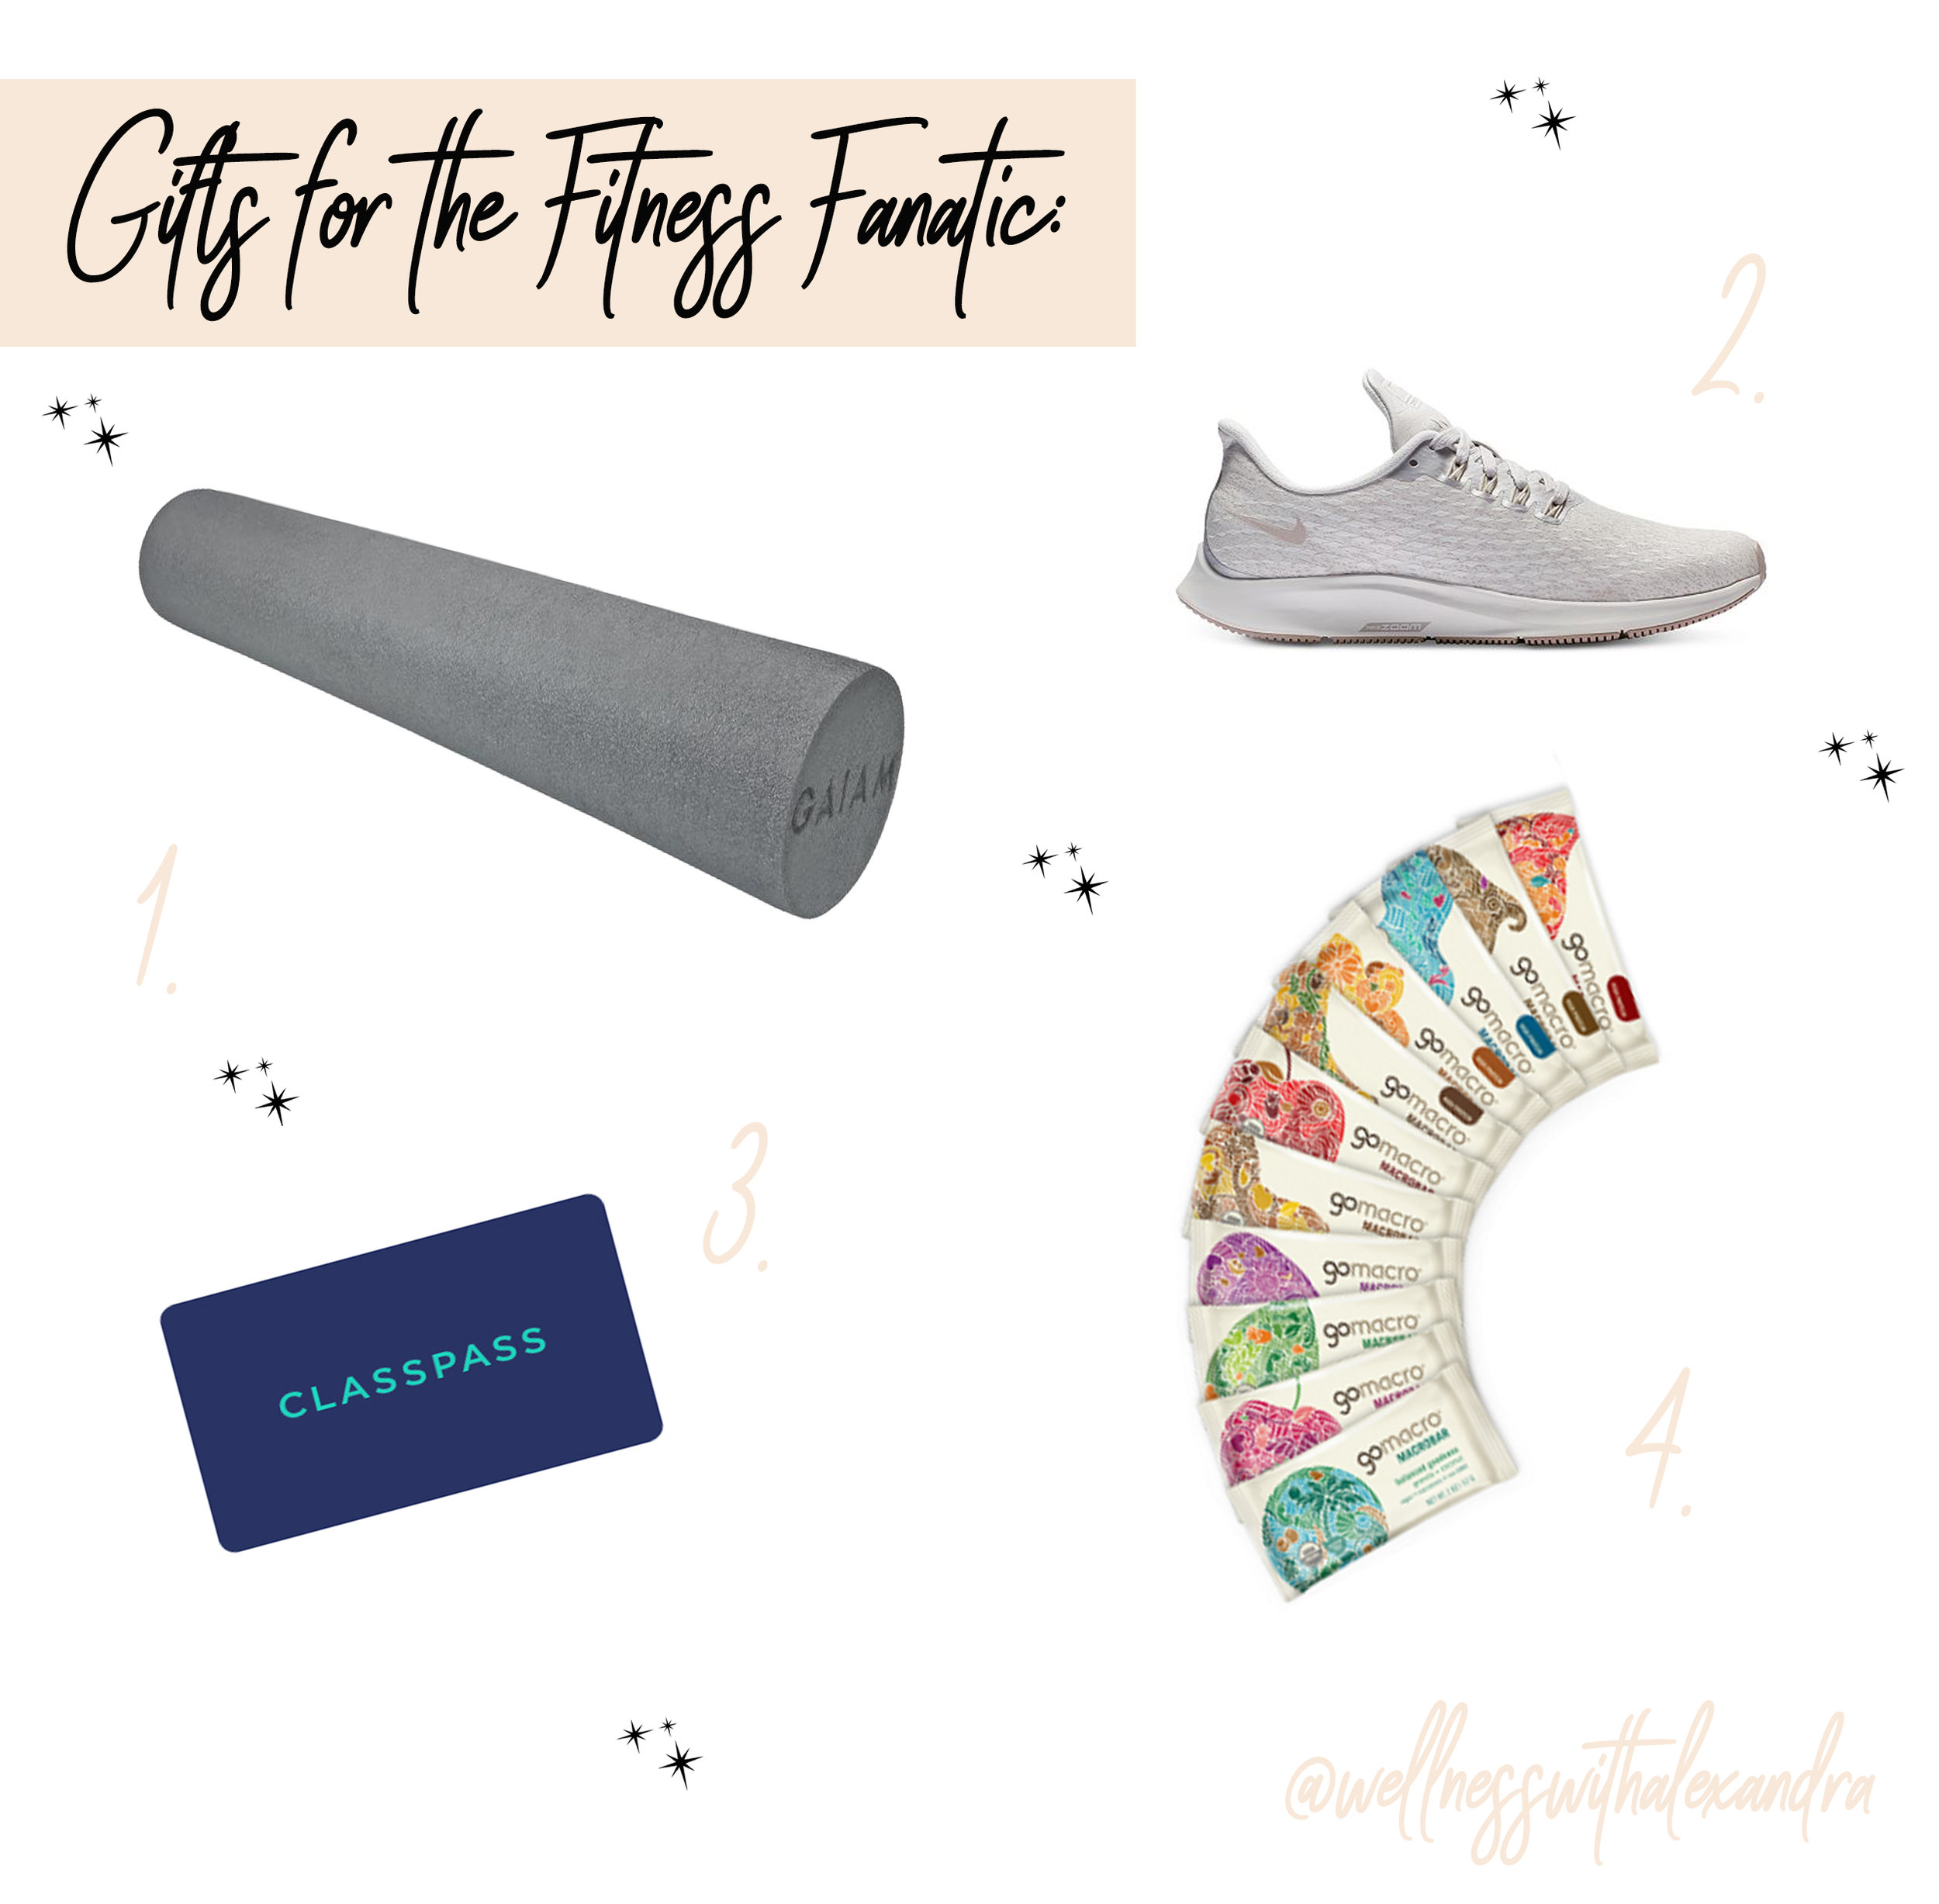 GiftsForTheFitnessFanatic